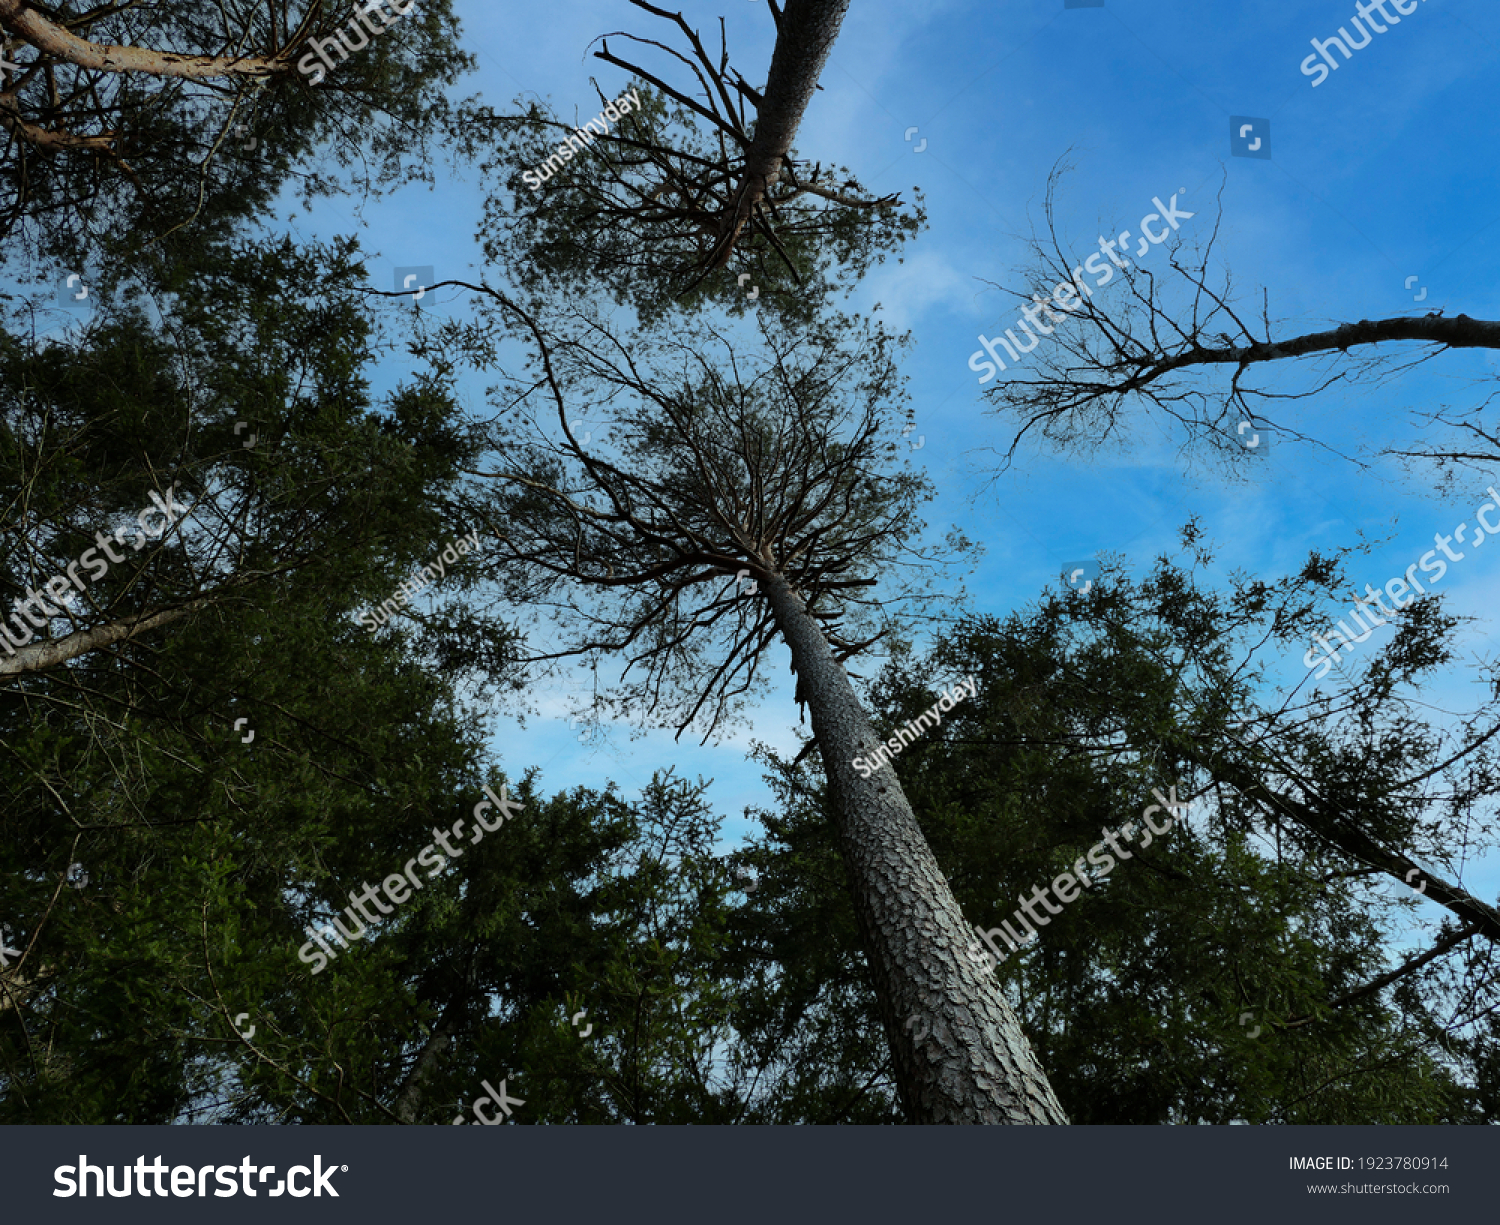 stock-photo-looking-up-to-the-sky-in-a-f